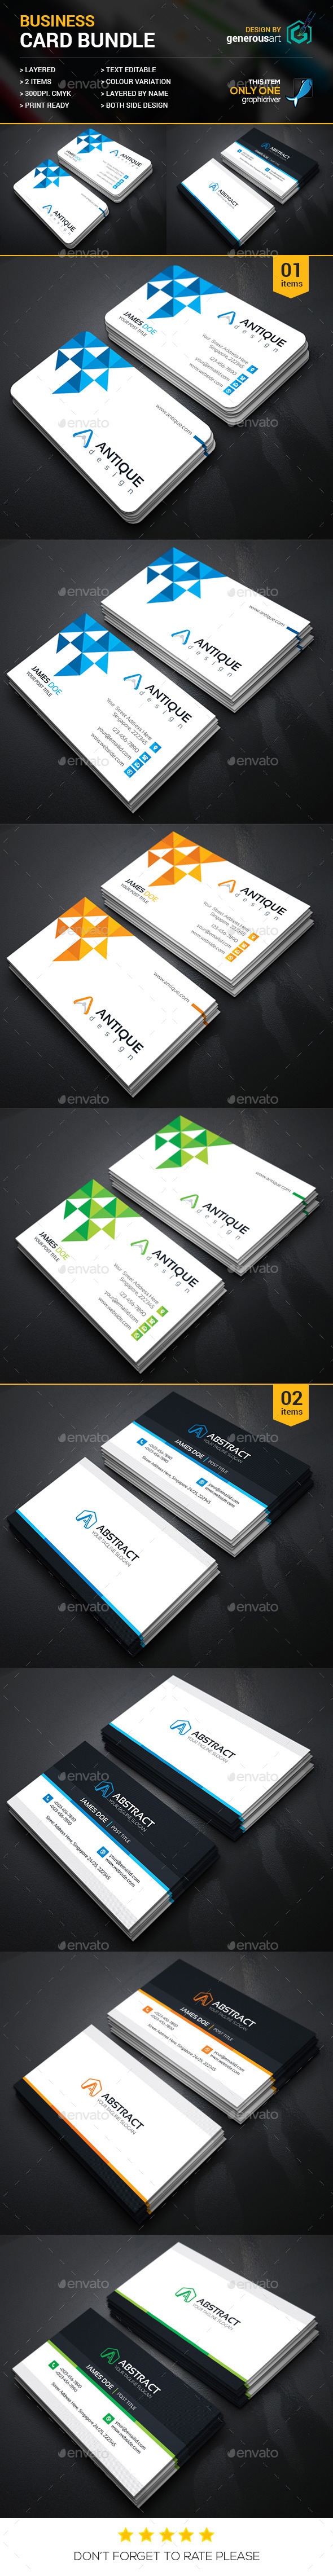 Business Card Bundle 2 in 1 12